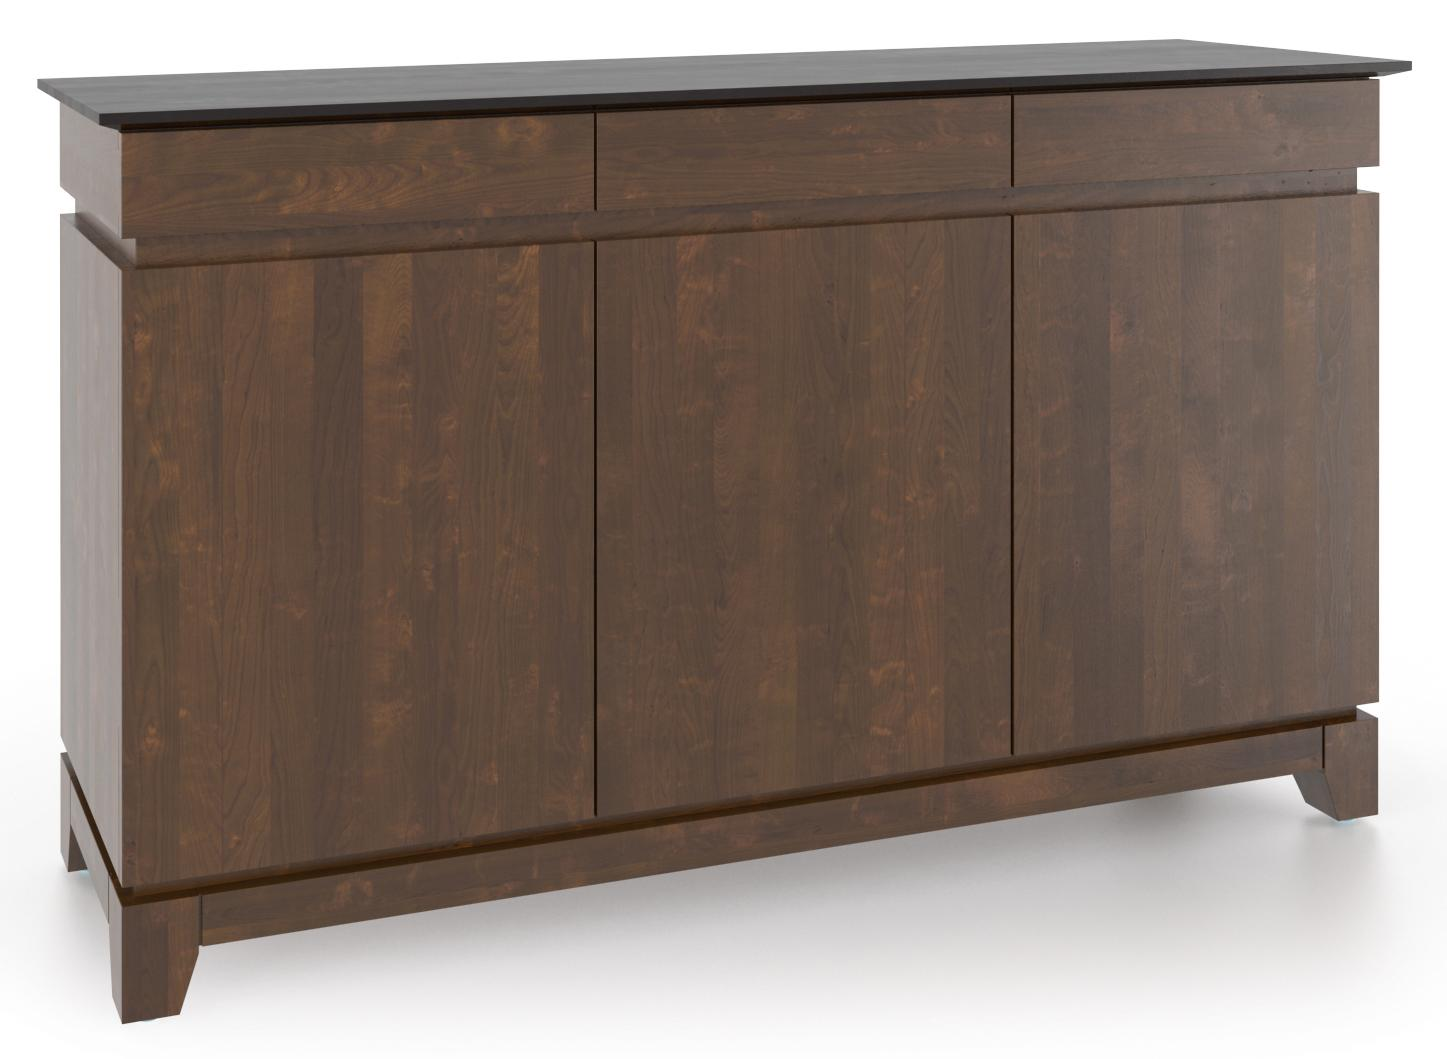 Gourmet <b>Customizable</b> Credenza by Canadel at Dinette Depot